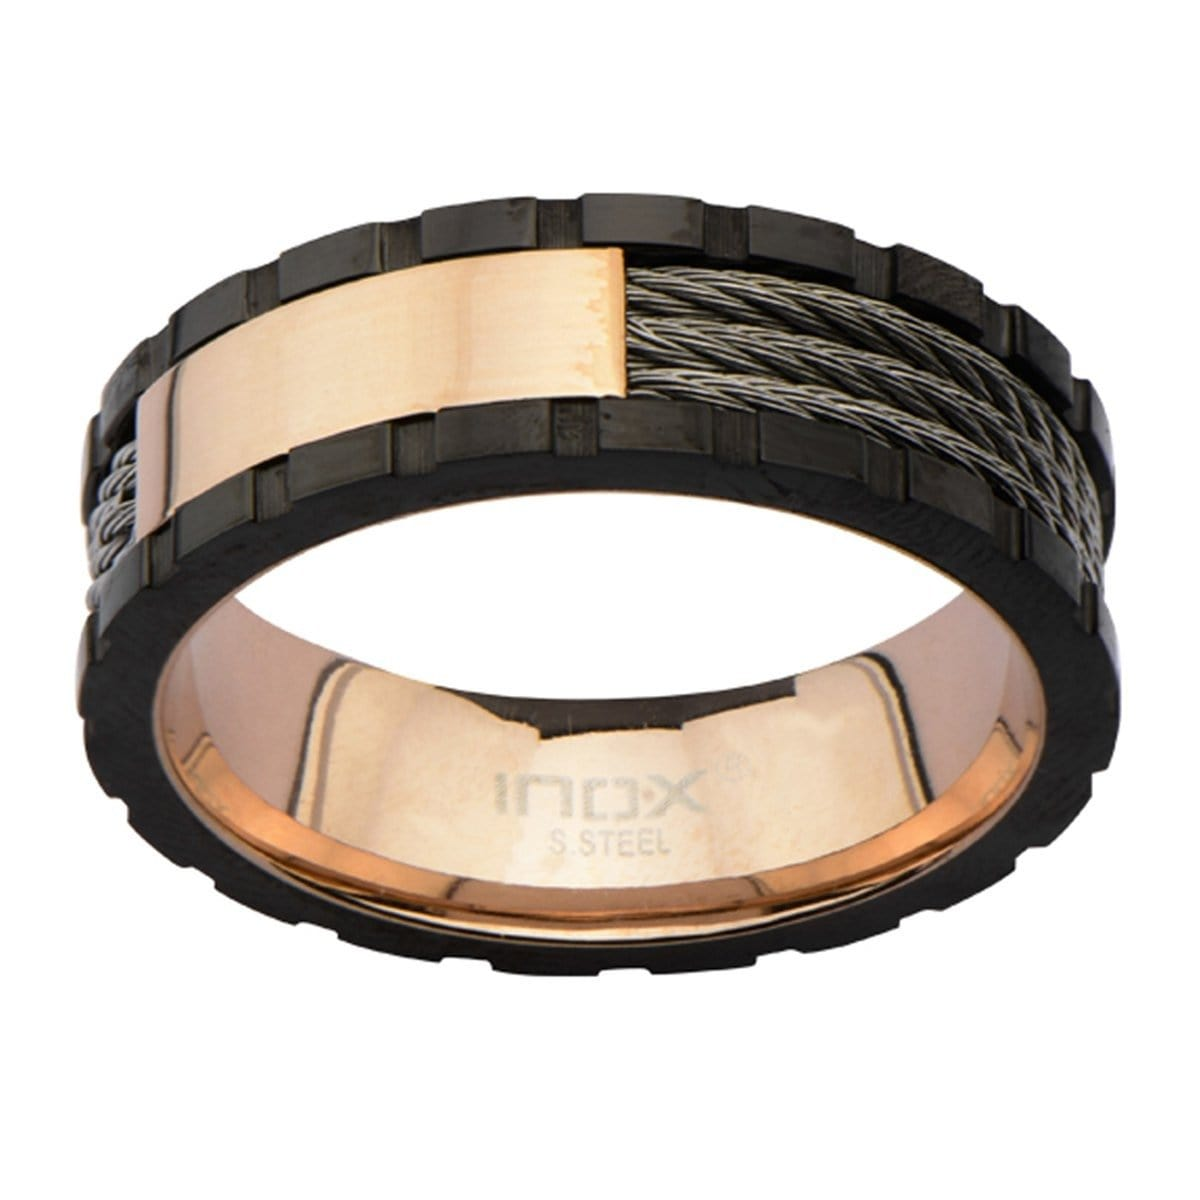 Rose Gold, Black, & Silver Stainless Steel Engraveable Cable Ring